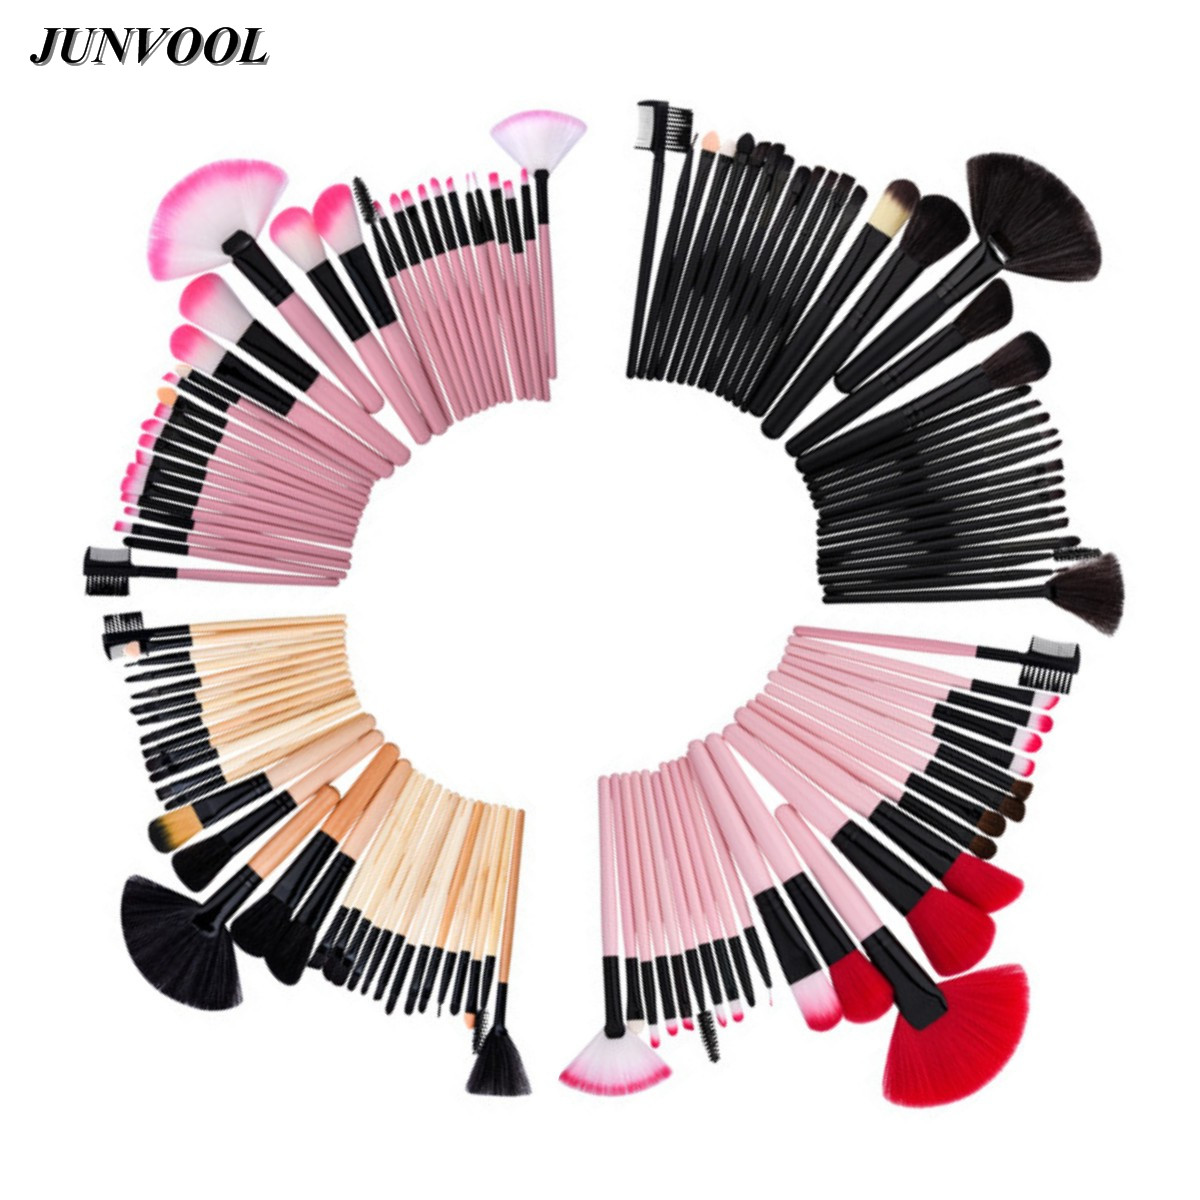 Pink Cosmetic Fan Brush Soft Synthetic Hair Make Up Tools Kit Cosmetics Makeup Brushes Black Sets Ccessories Beauty Essentials hot sale 2016 soft beauty woolen 24 pcs cosmetic kit makeup brush set tools make up make up brush with case drop shipping 31